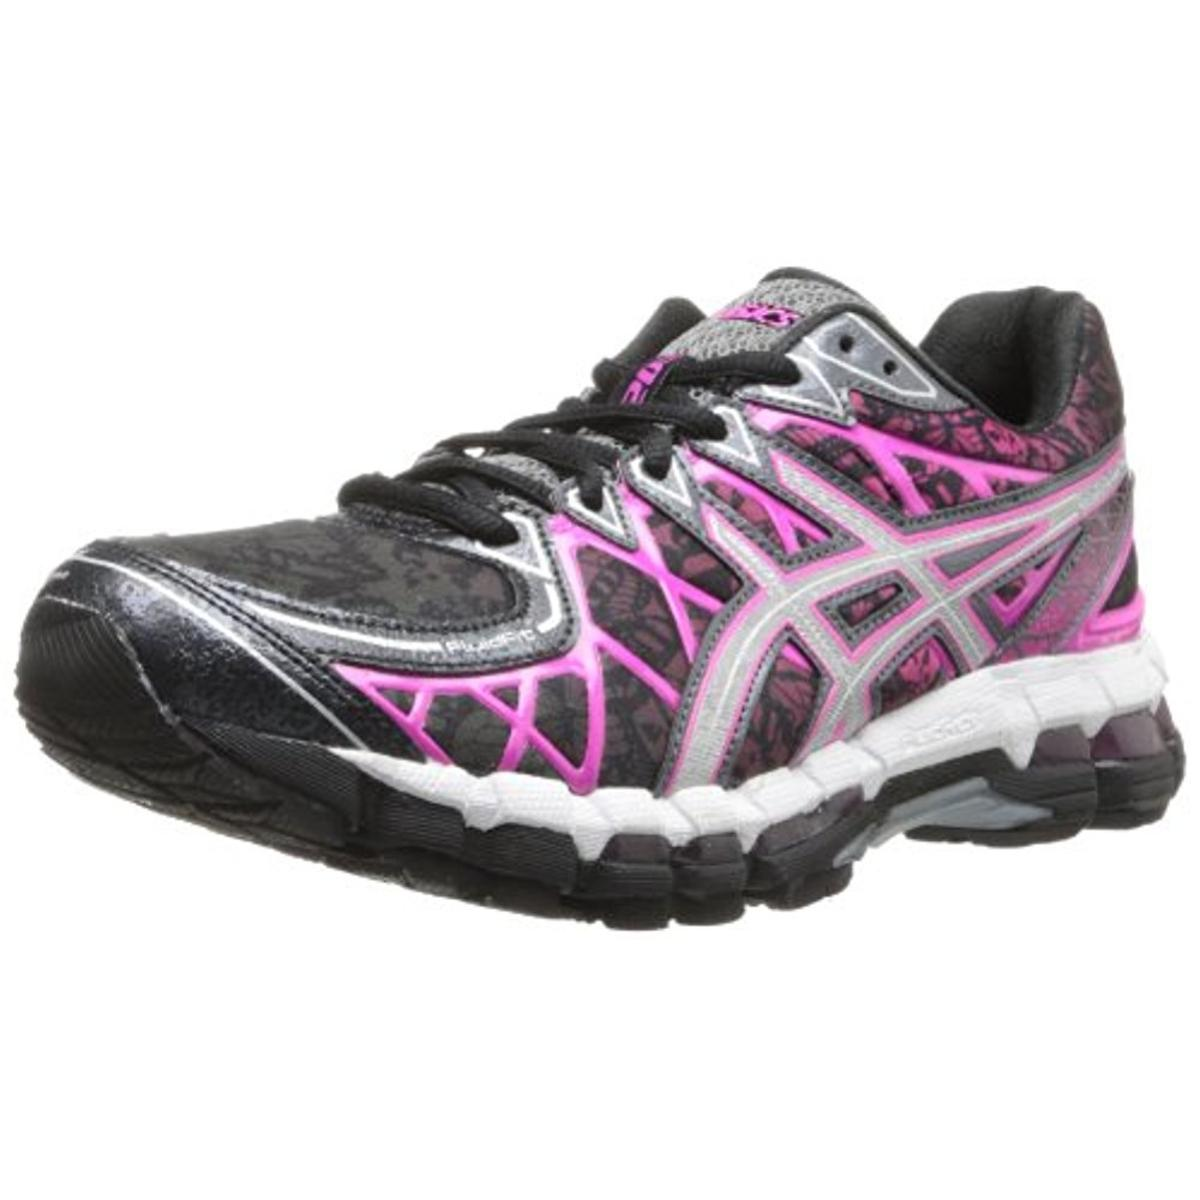 Asics Womens Kyano20 Faux Leather Metallic Running Shoes